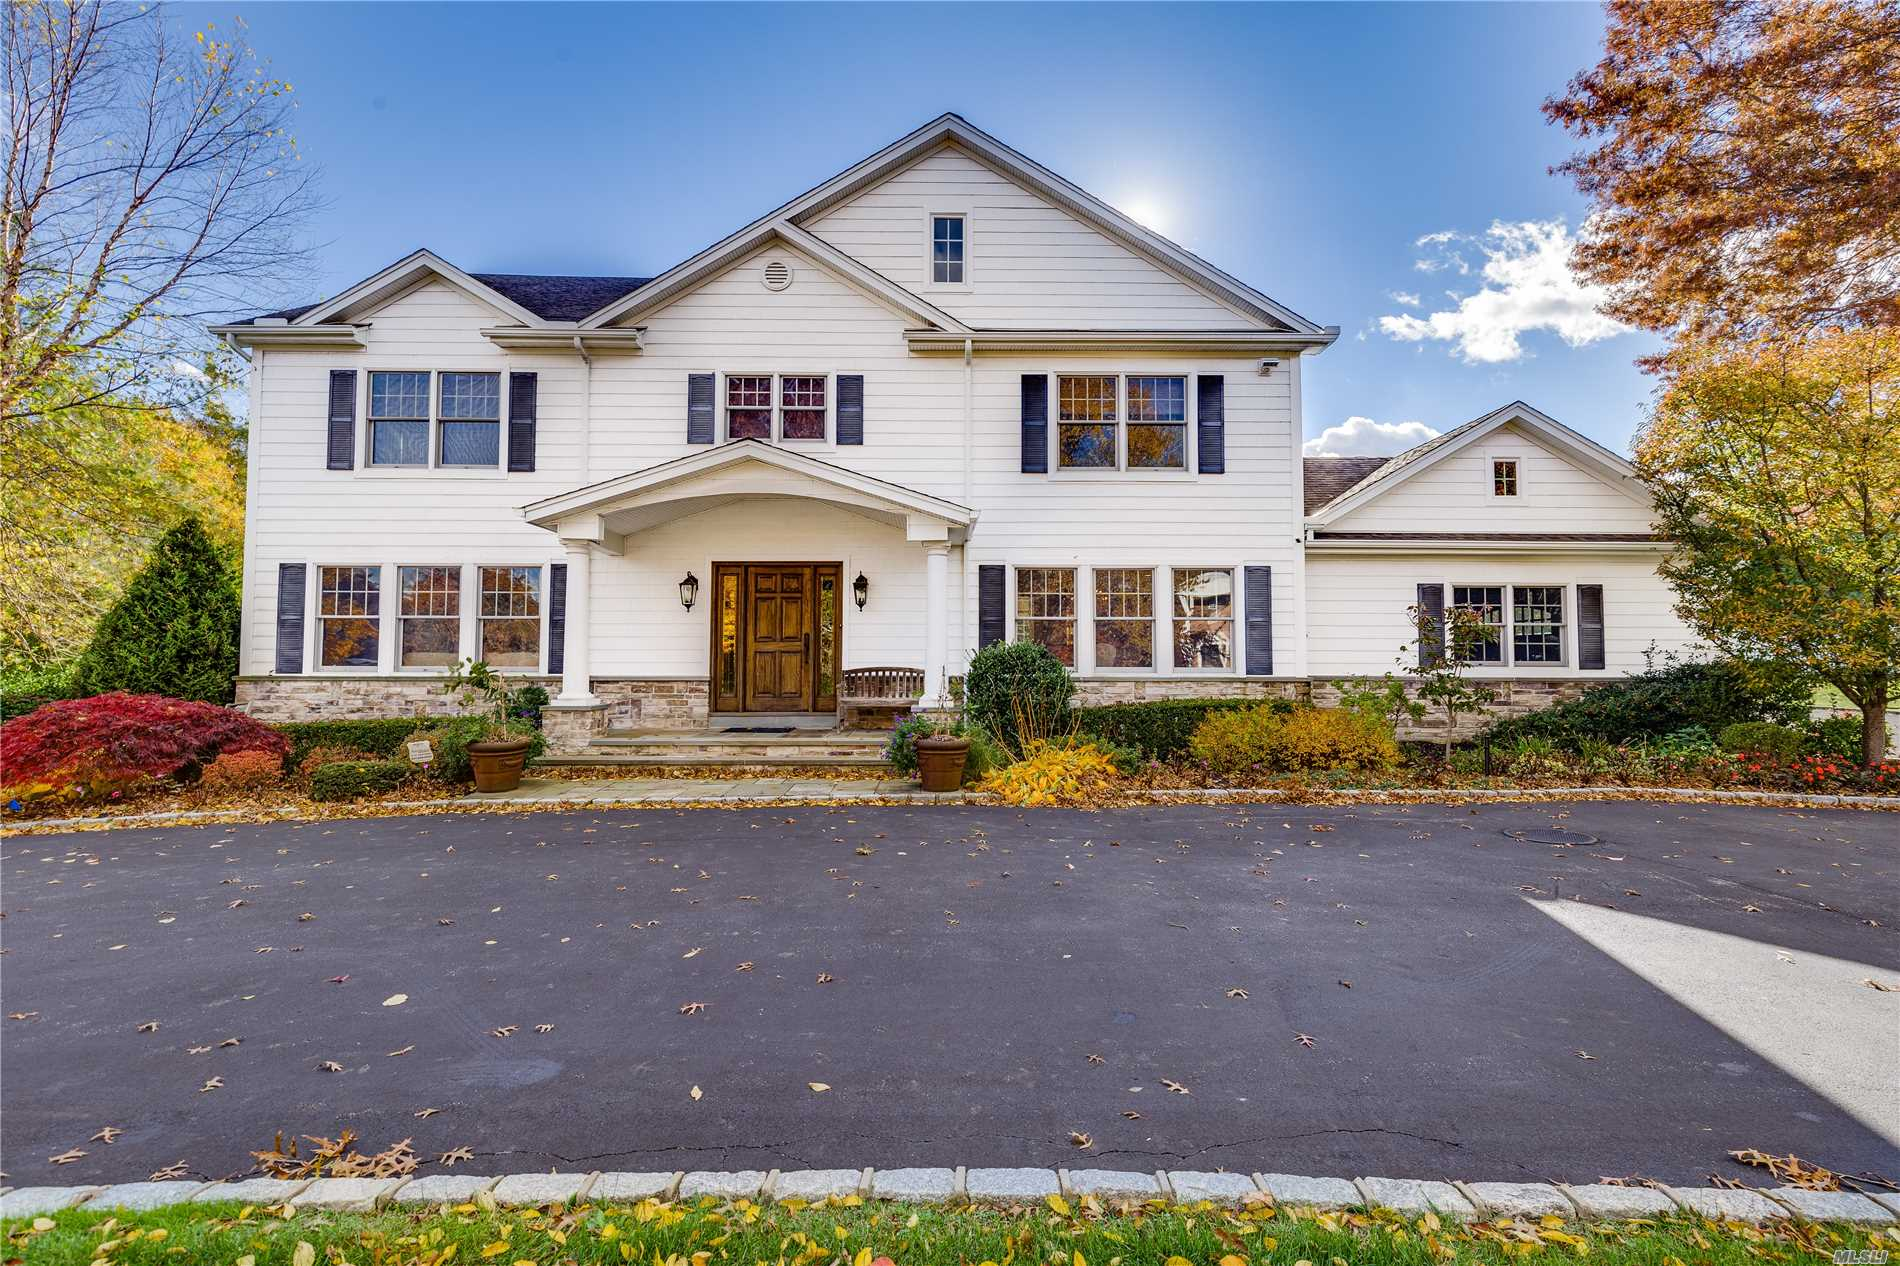 Majestic Colonial Expanded & Renovated To Perfection!This Elegant Home Offers Everything You Are Looking For.High End Finishes Throughout Include Custom Chef's Kitchen W Top Of Line Appliances-2 Dishwashers & Gas Cooking, Guest Suite On 1st Fl, Luxury Bathrooms, Distinctive Architectural Details, Radiant Heat, Rich Wood Floors, Walk In Pantry & Large Mud Room.This Stately & Inviting Home Is Beautifully Situated On Lush, Flat Property & Conveniently Located To All.Round Swamp Rd. Area!Hhh East.